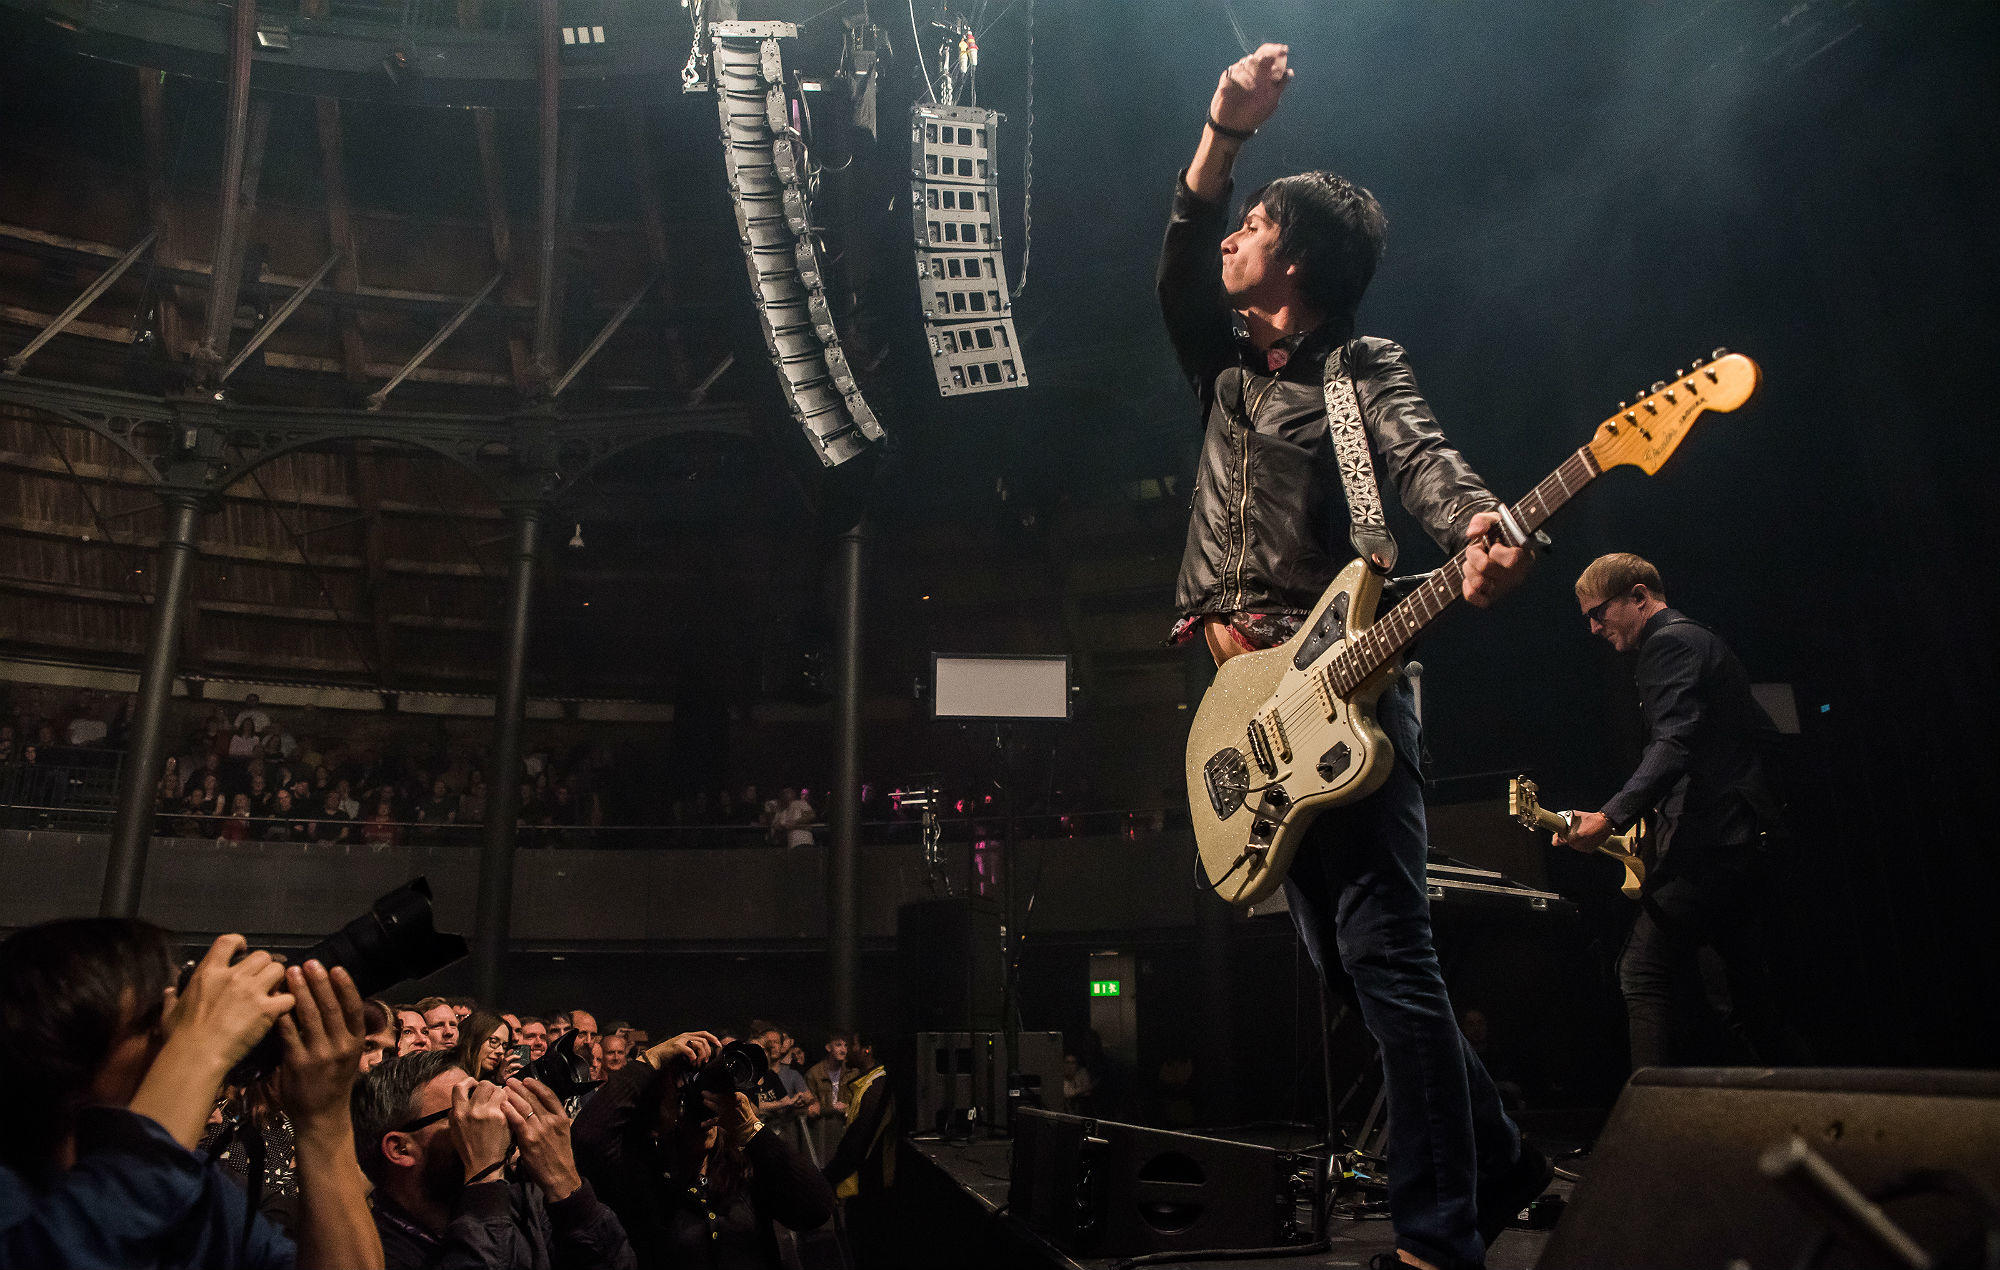 Johnny Marr and The The's Matt Johnson perform on stage for first time in 25 years in London https://t.co/e0BGZoCYuf https://t.co/wMOuW7CR05